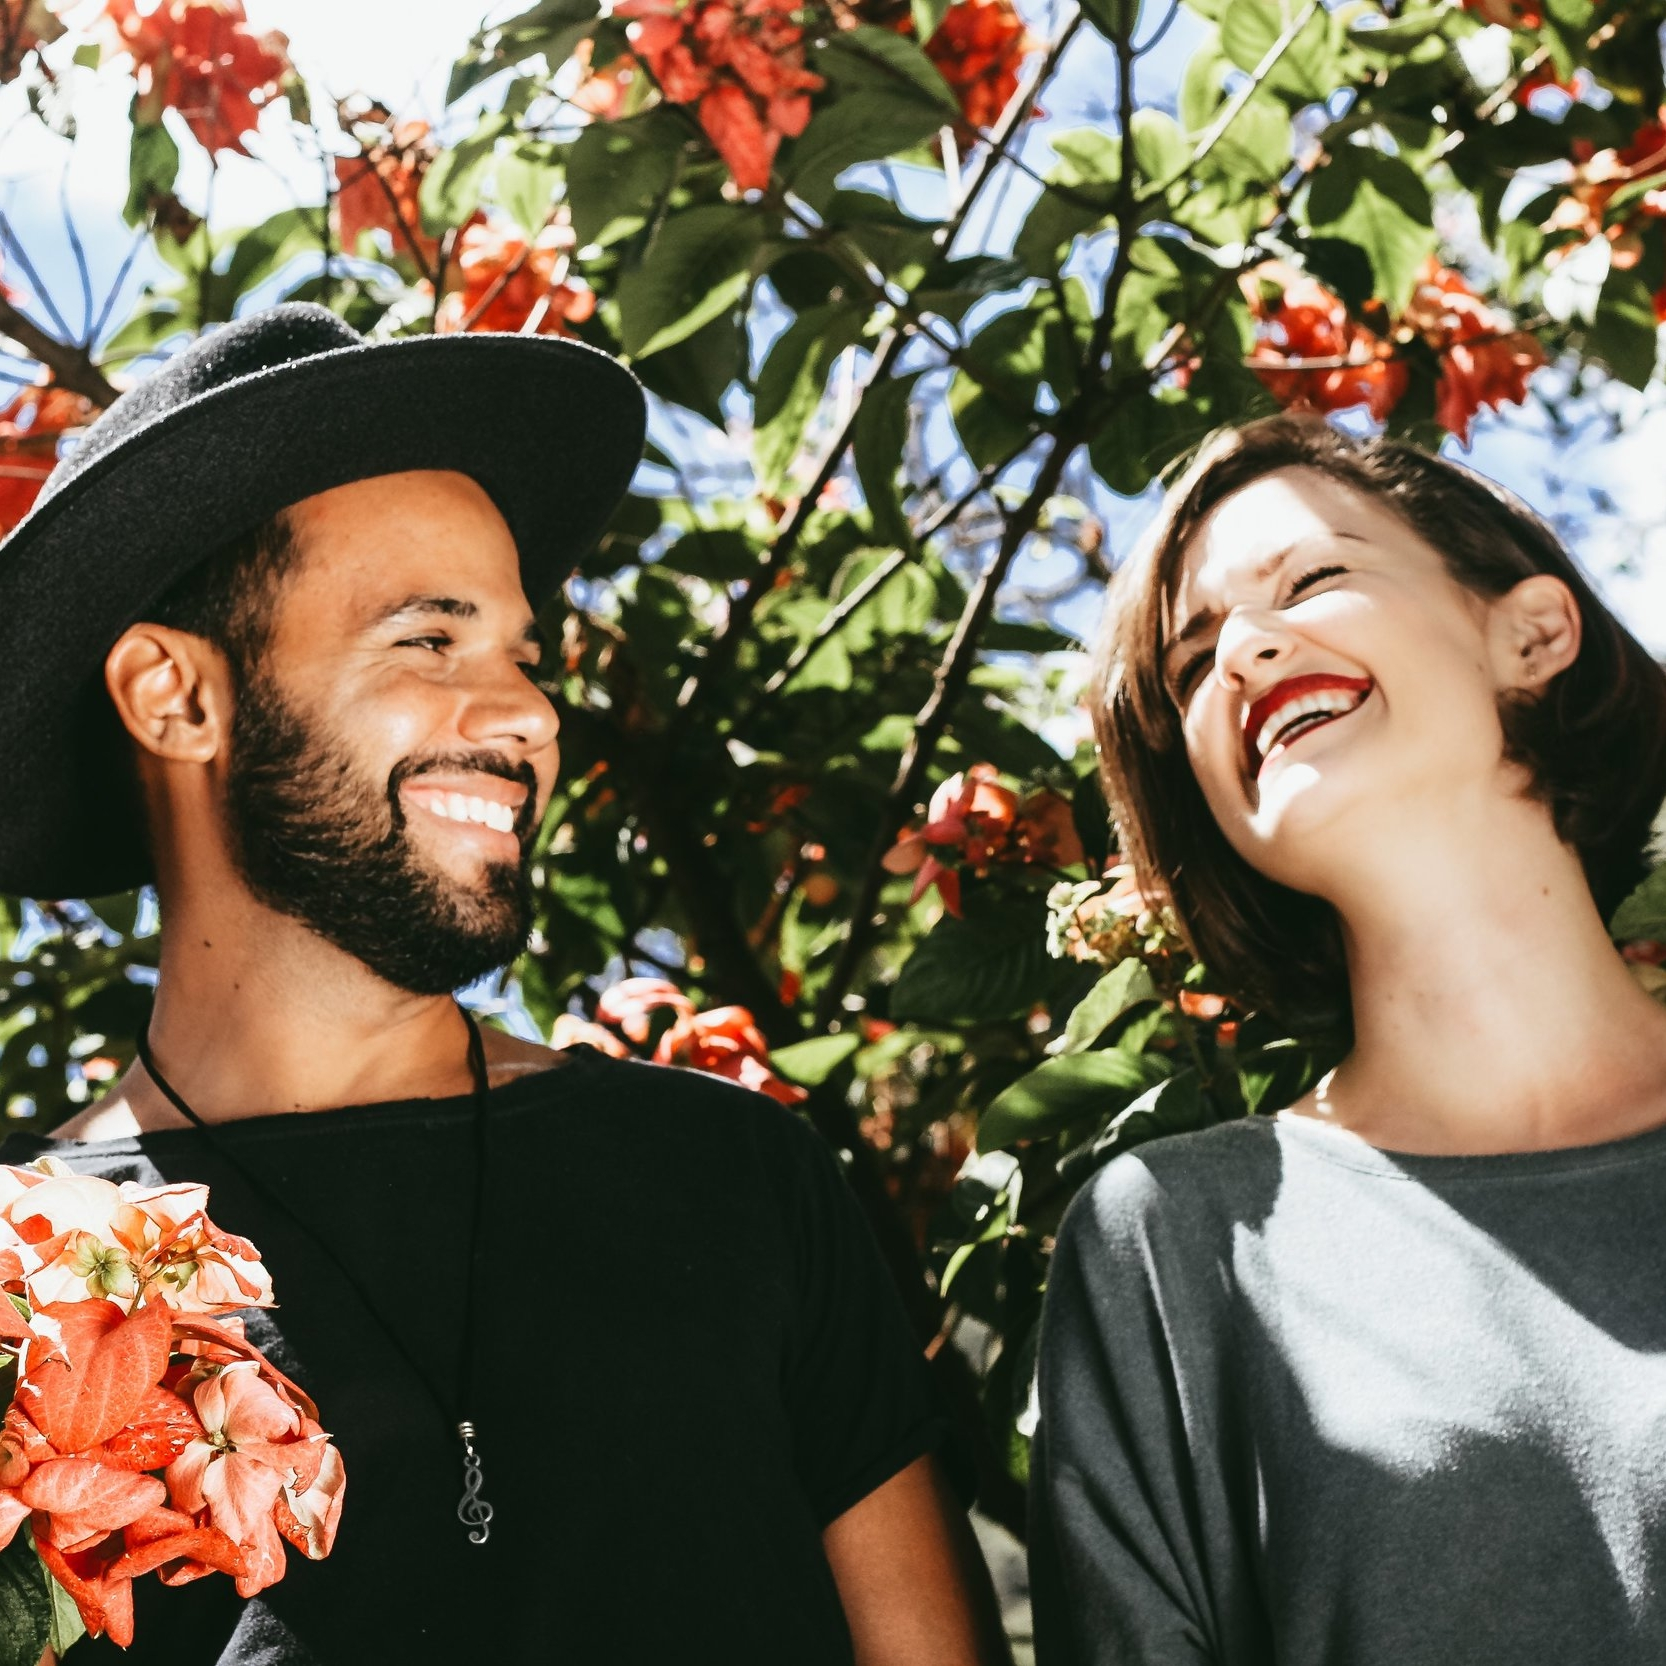 couple-laughing-outdoors-under-flowered-vine.jpg